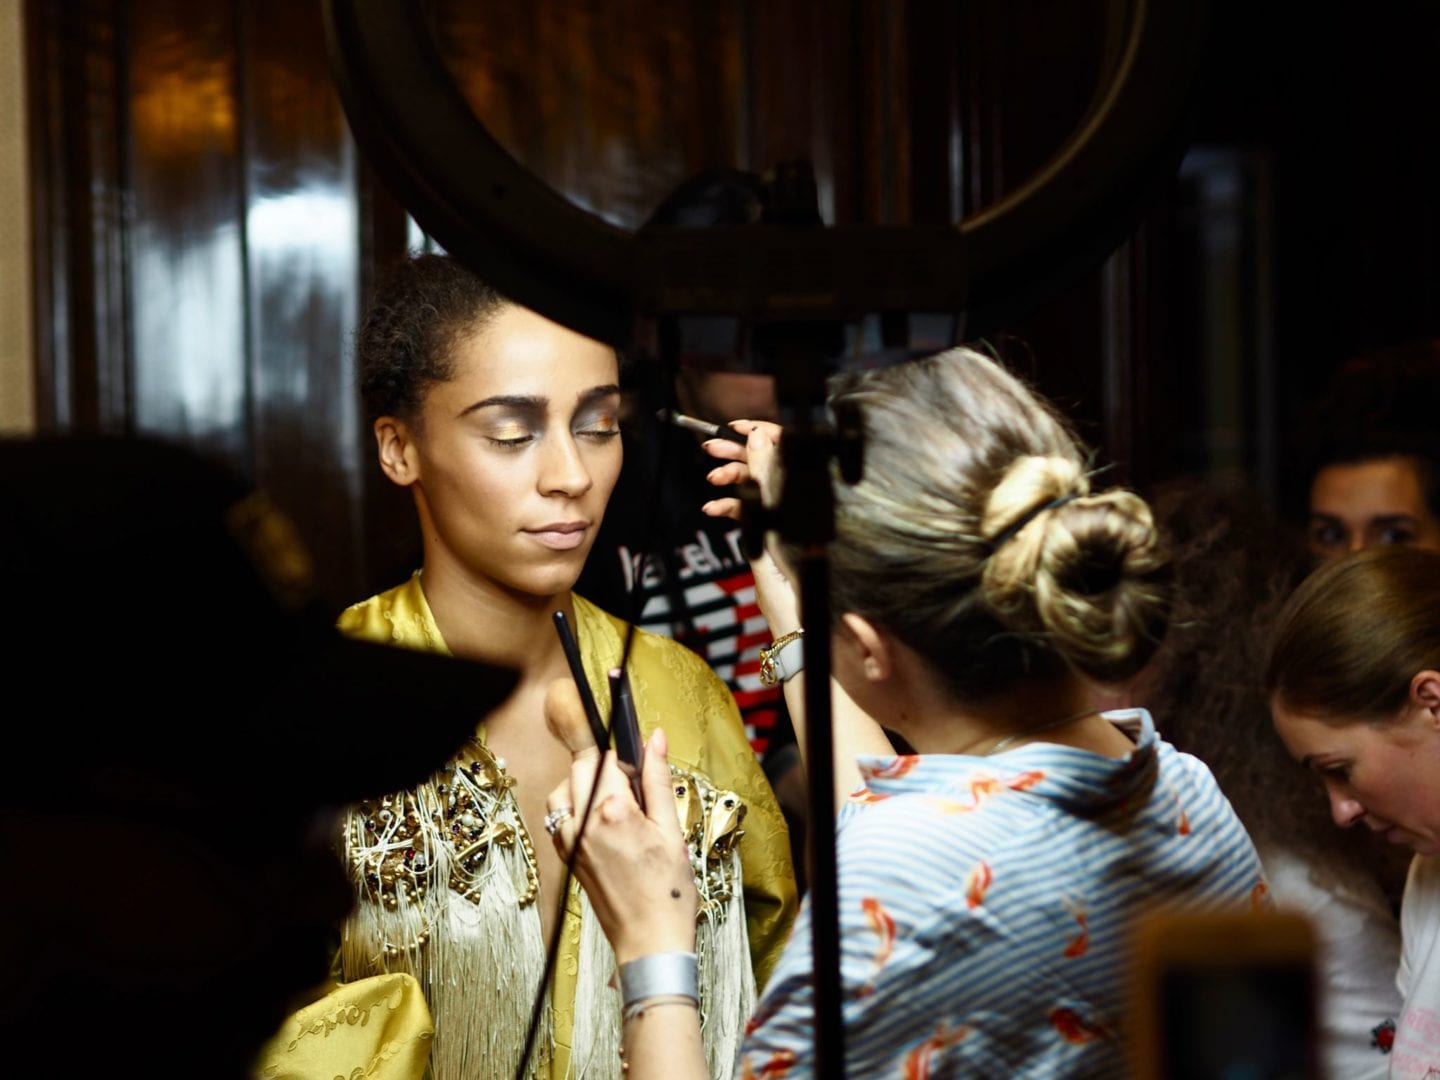 Backstage-at-LFW-With-Hellavagirl-X-Benefit-Cosmetics-valfe-phone-case